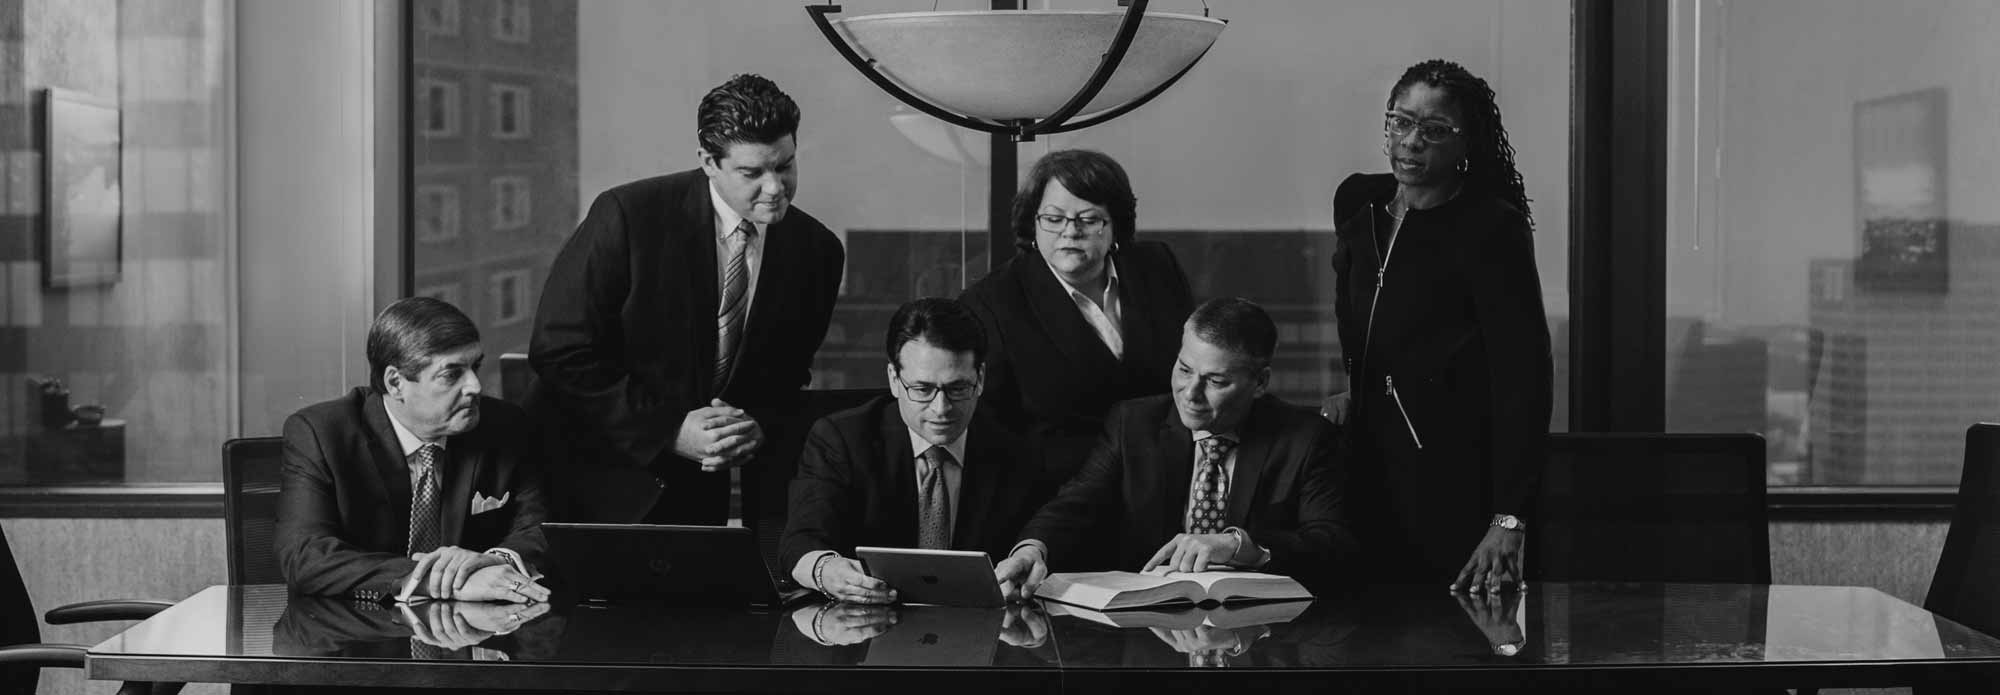 criminal-defense-attorneys-in-michigan